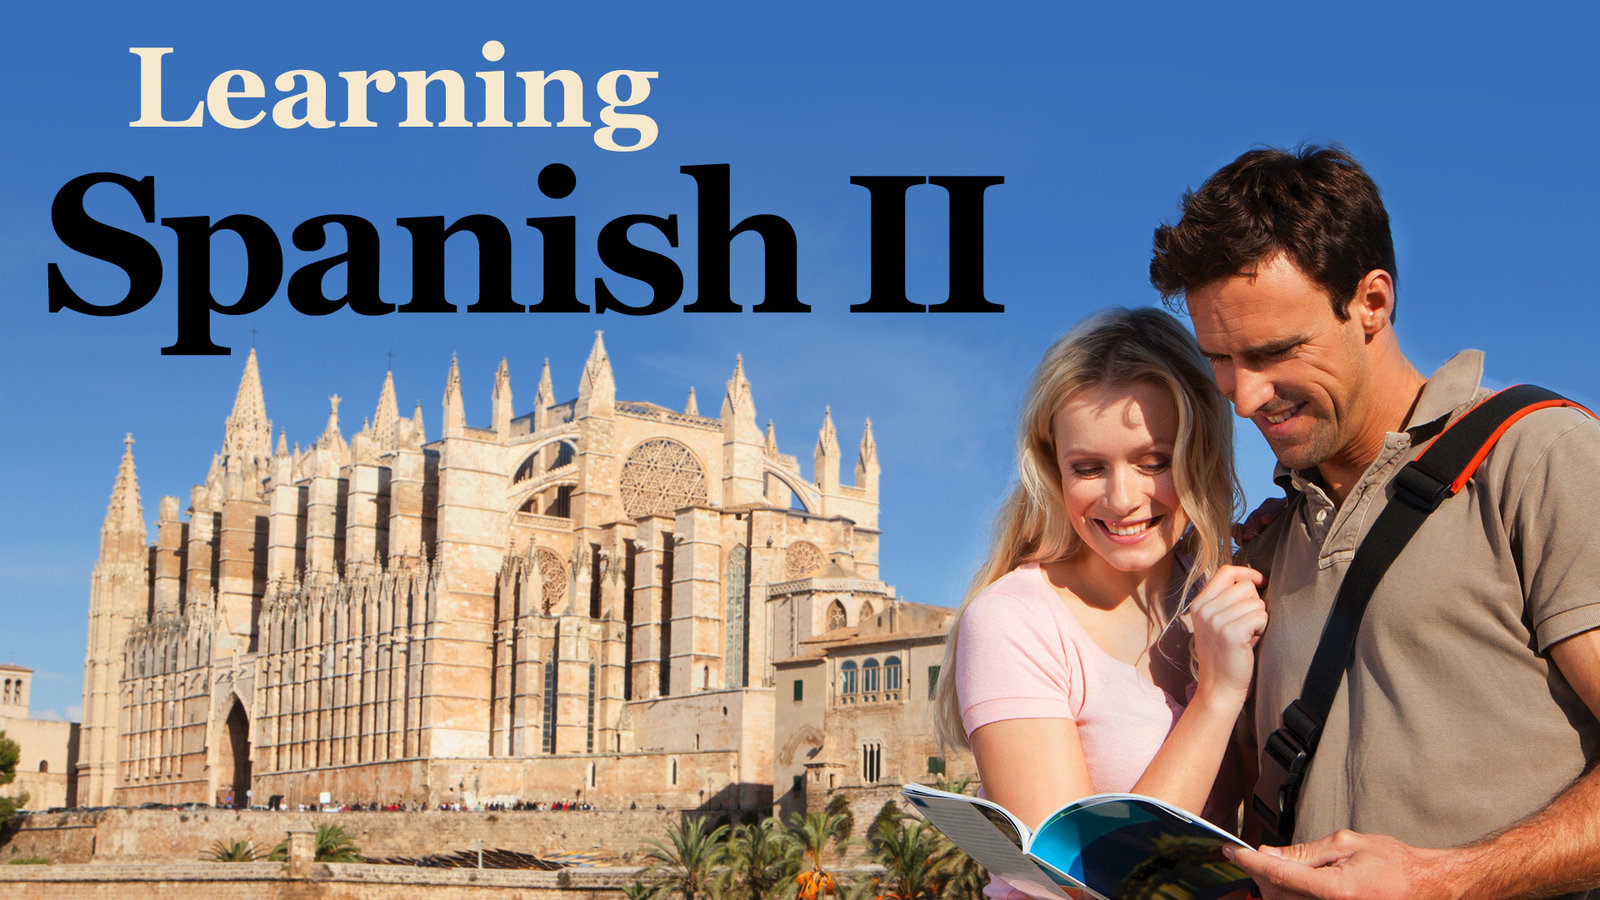 Learning Spanish II: How to Understand and Speak a New Language